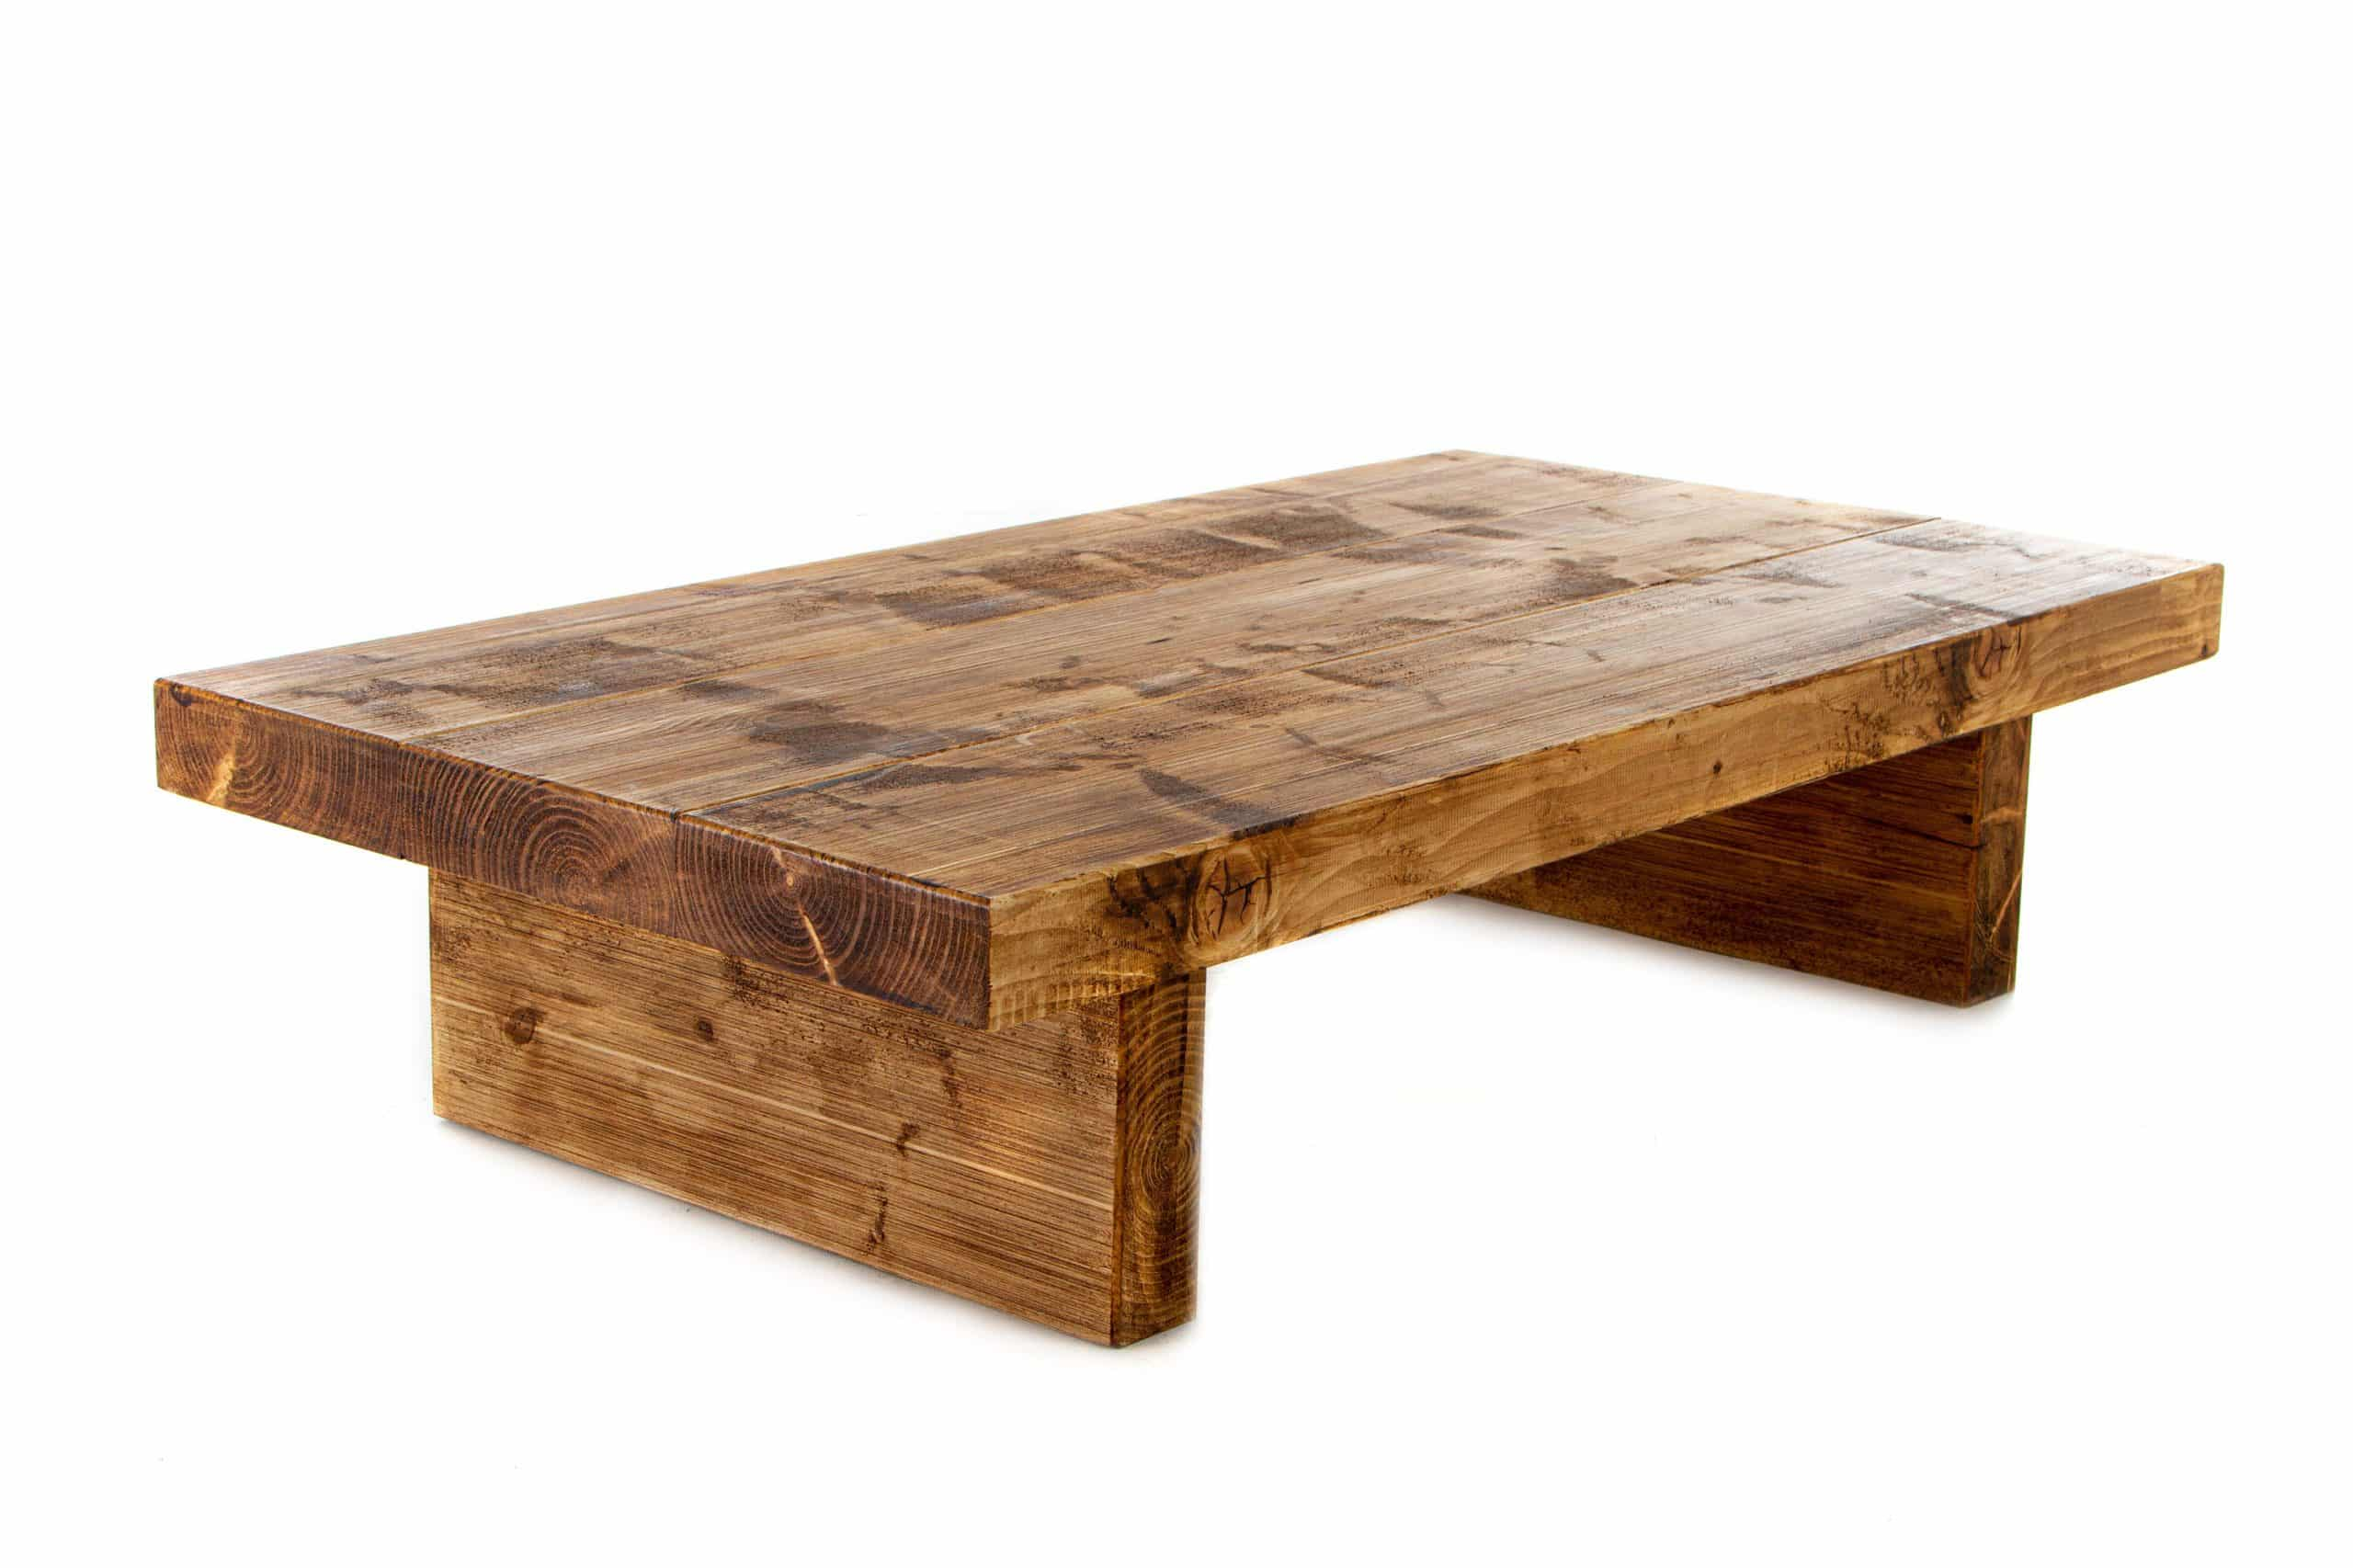 Chunky Rustic 35cm Tall Coffee Table Handcrafted From 3 Inch Thick Reclaimed Solid Wood Handmade Sofa Table Ashley Moore Furniture